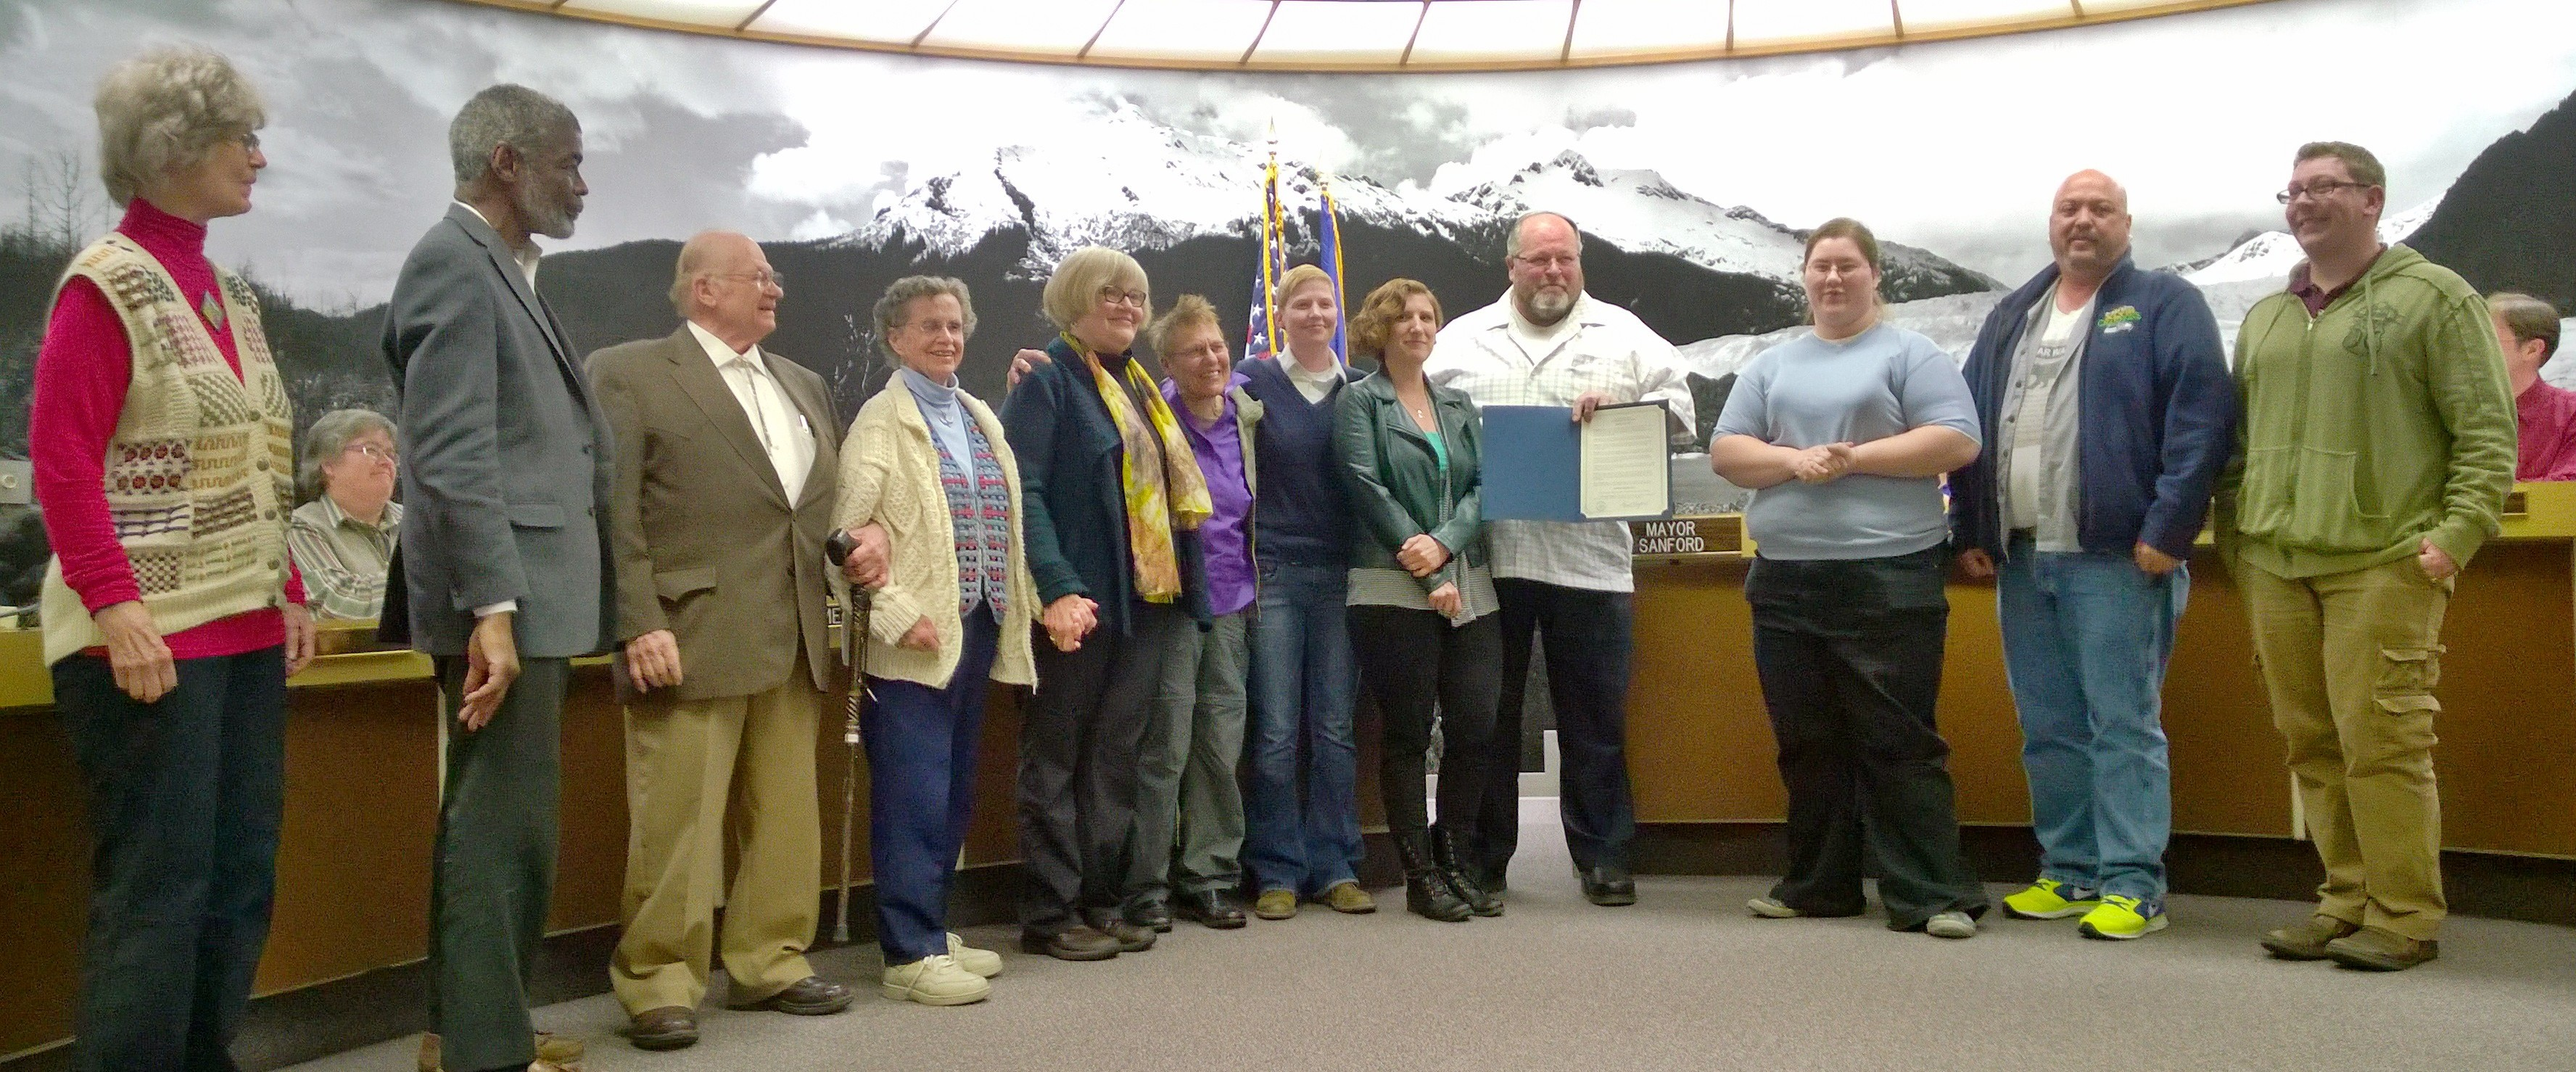 Supporters pose with Mayor Merrill Sanford after he read a proclamation declaring June 2014 as Juneau Pride 2014. It's a celebration of LGBT people and their contributions. (Photo by Jeremy Hsieh/KTOO)